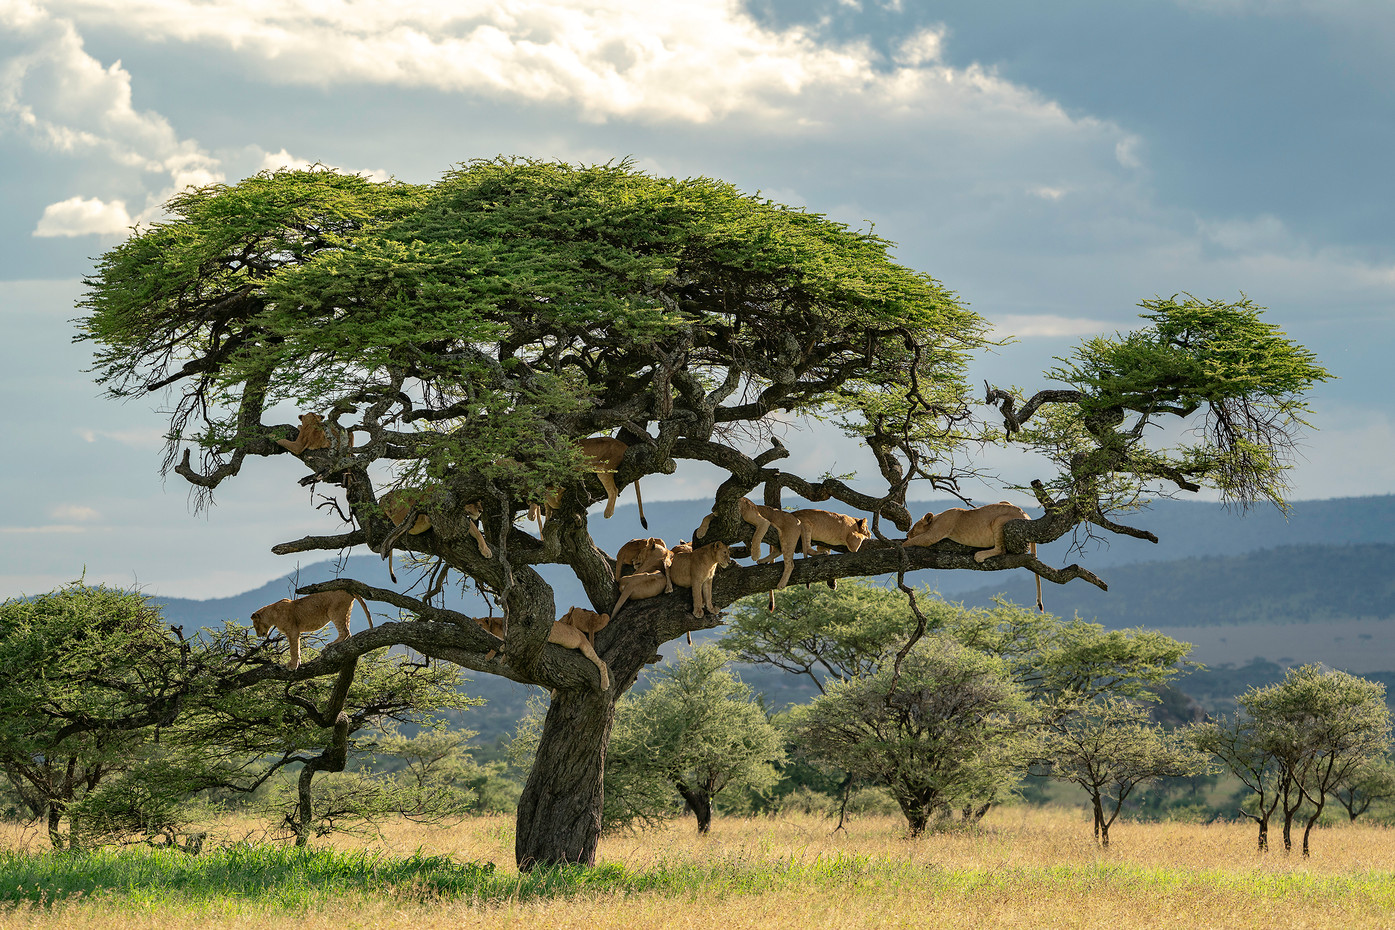 Pride of lions in a tree in the Serengeti NP, Tanzania